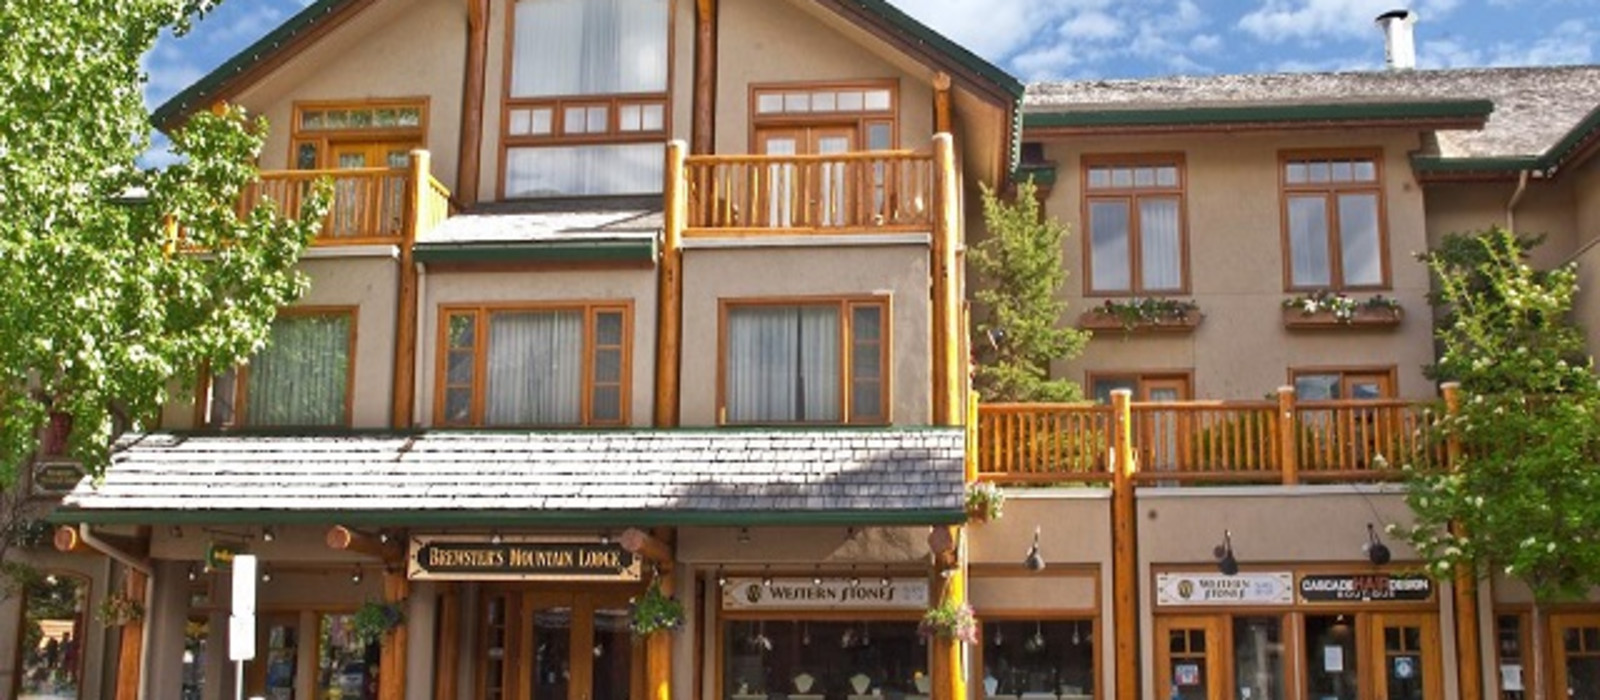 Hotel Brewster's Mountain Lodge Canada